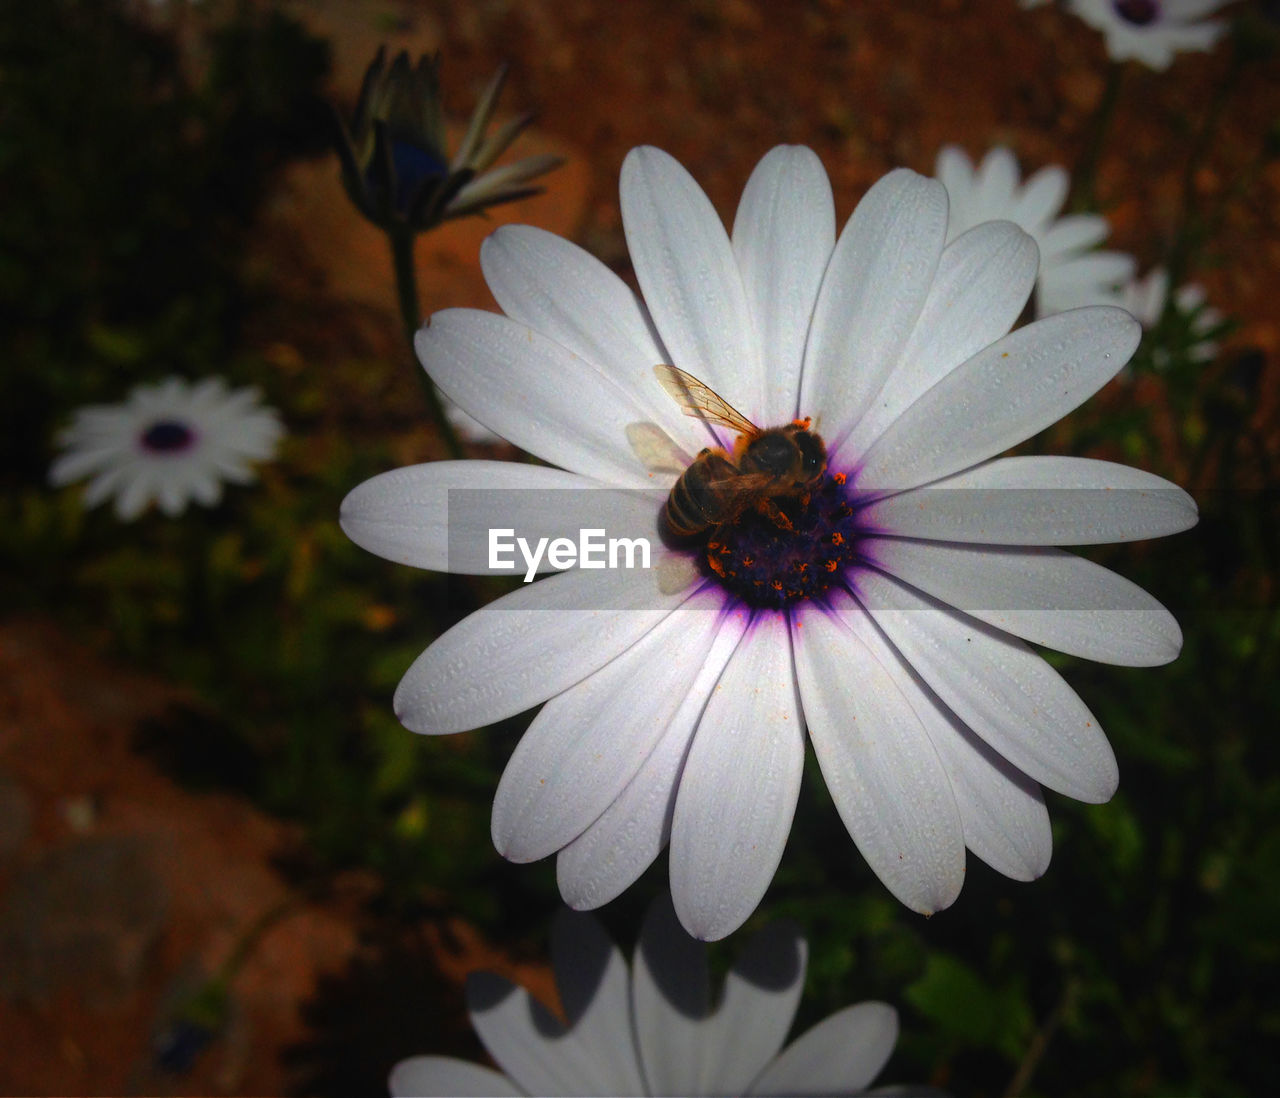 flower, petal, flower head, nature, beauty in nature, fragility, growth, blooming, freshness, pollen, osteospermum, plant, no people, day, outdoors, close-up